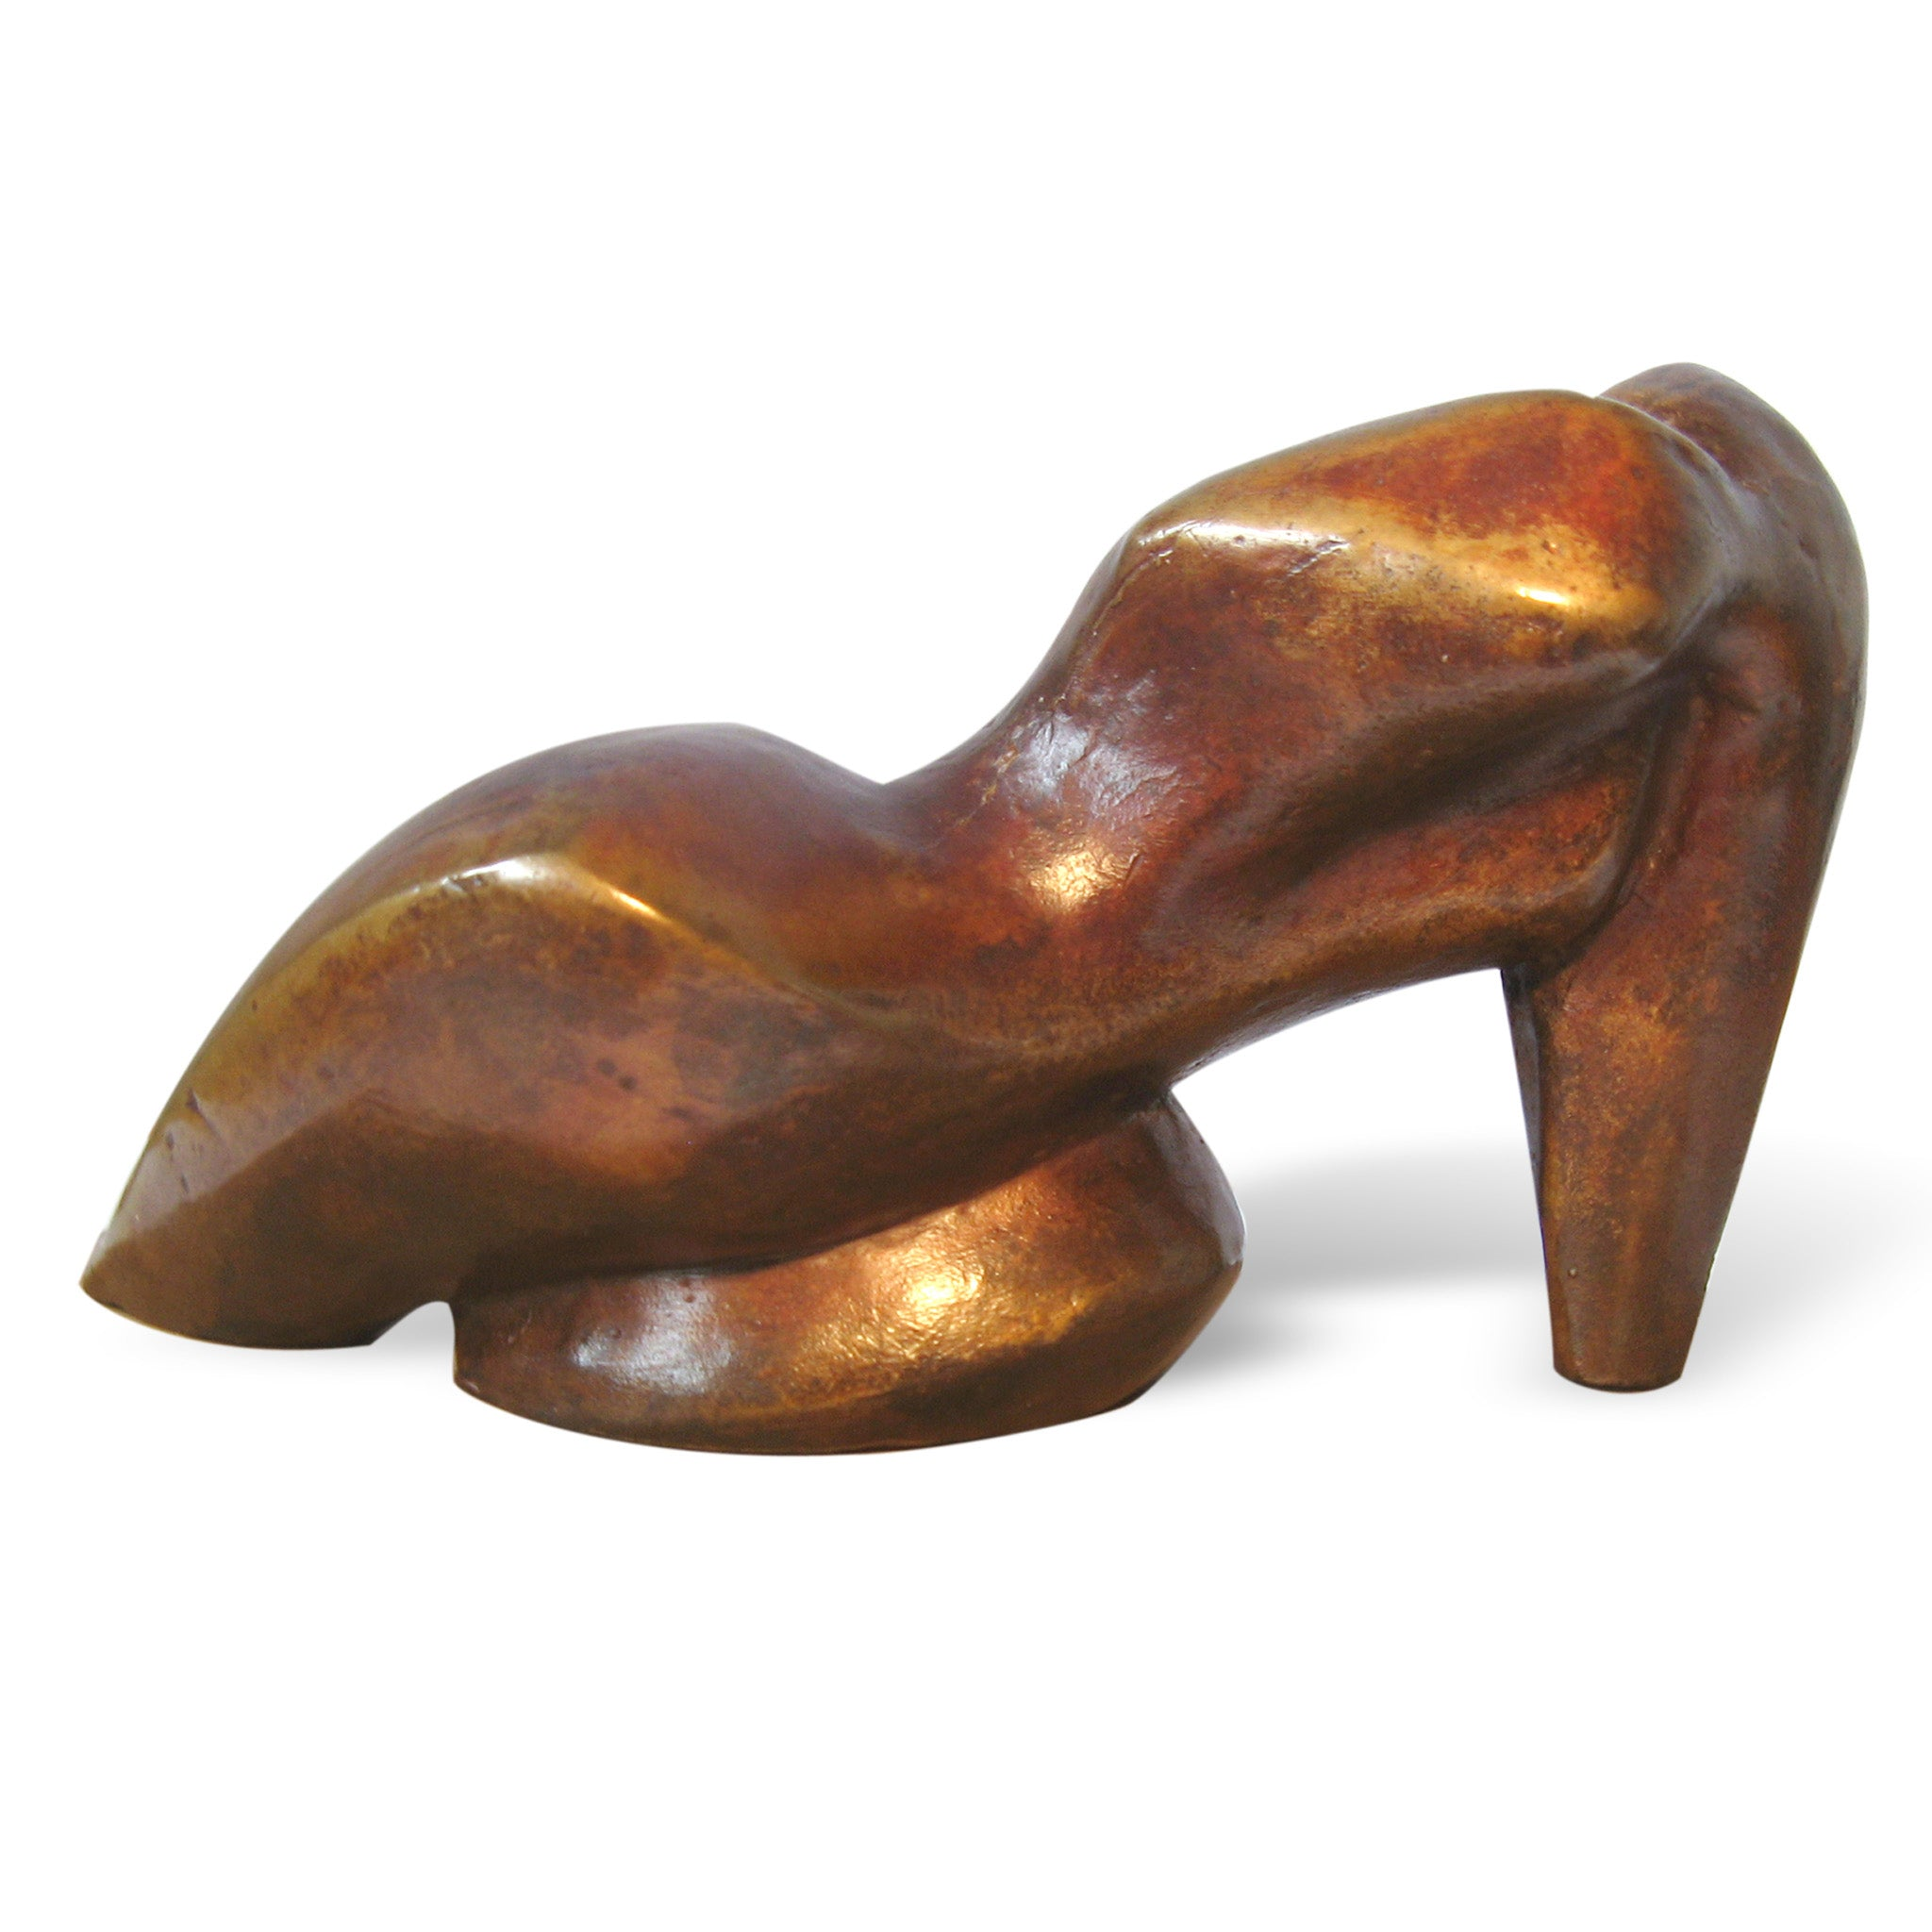 Reclining abstract female figurative bronze sculpture by Stephen Williams.